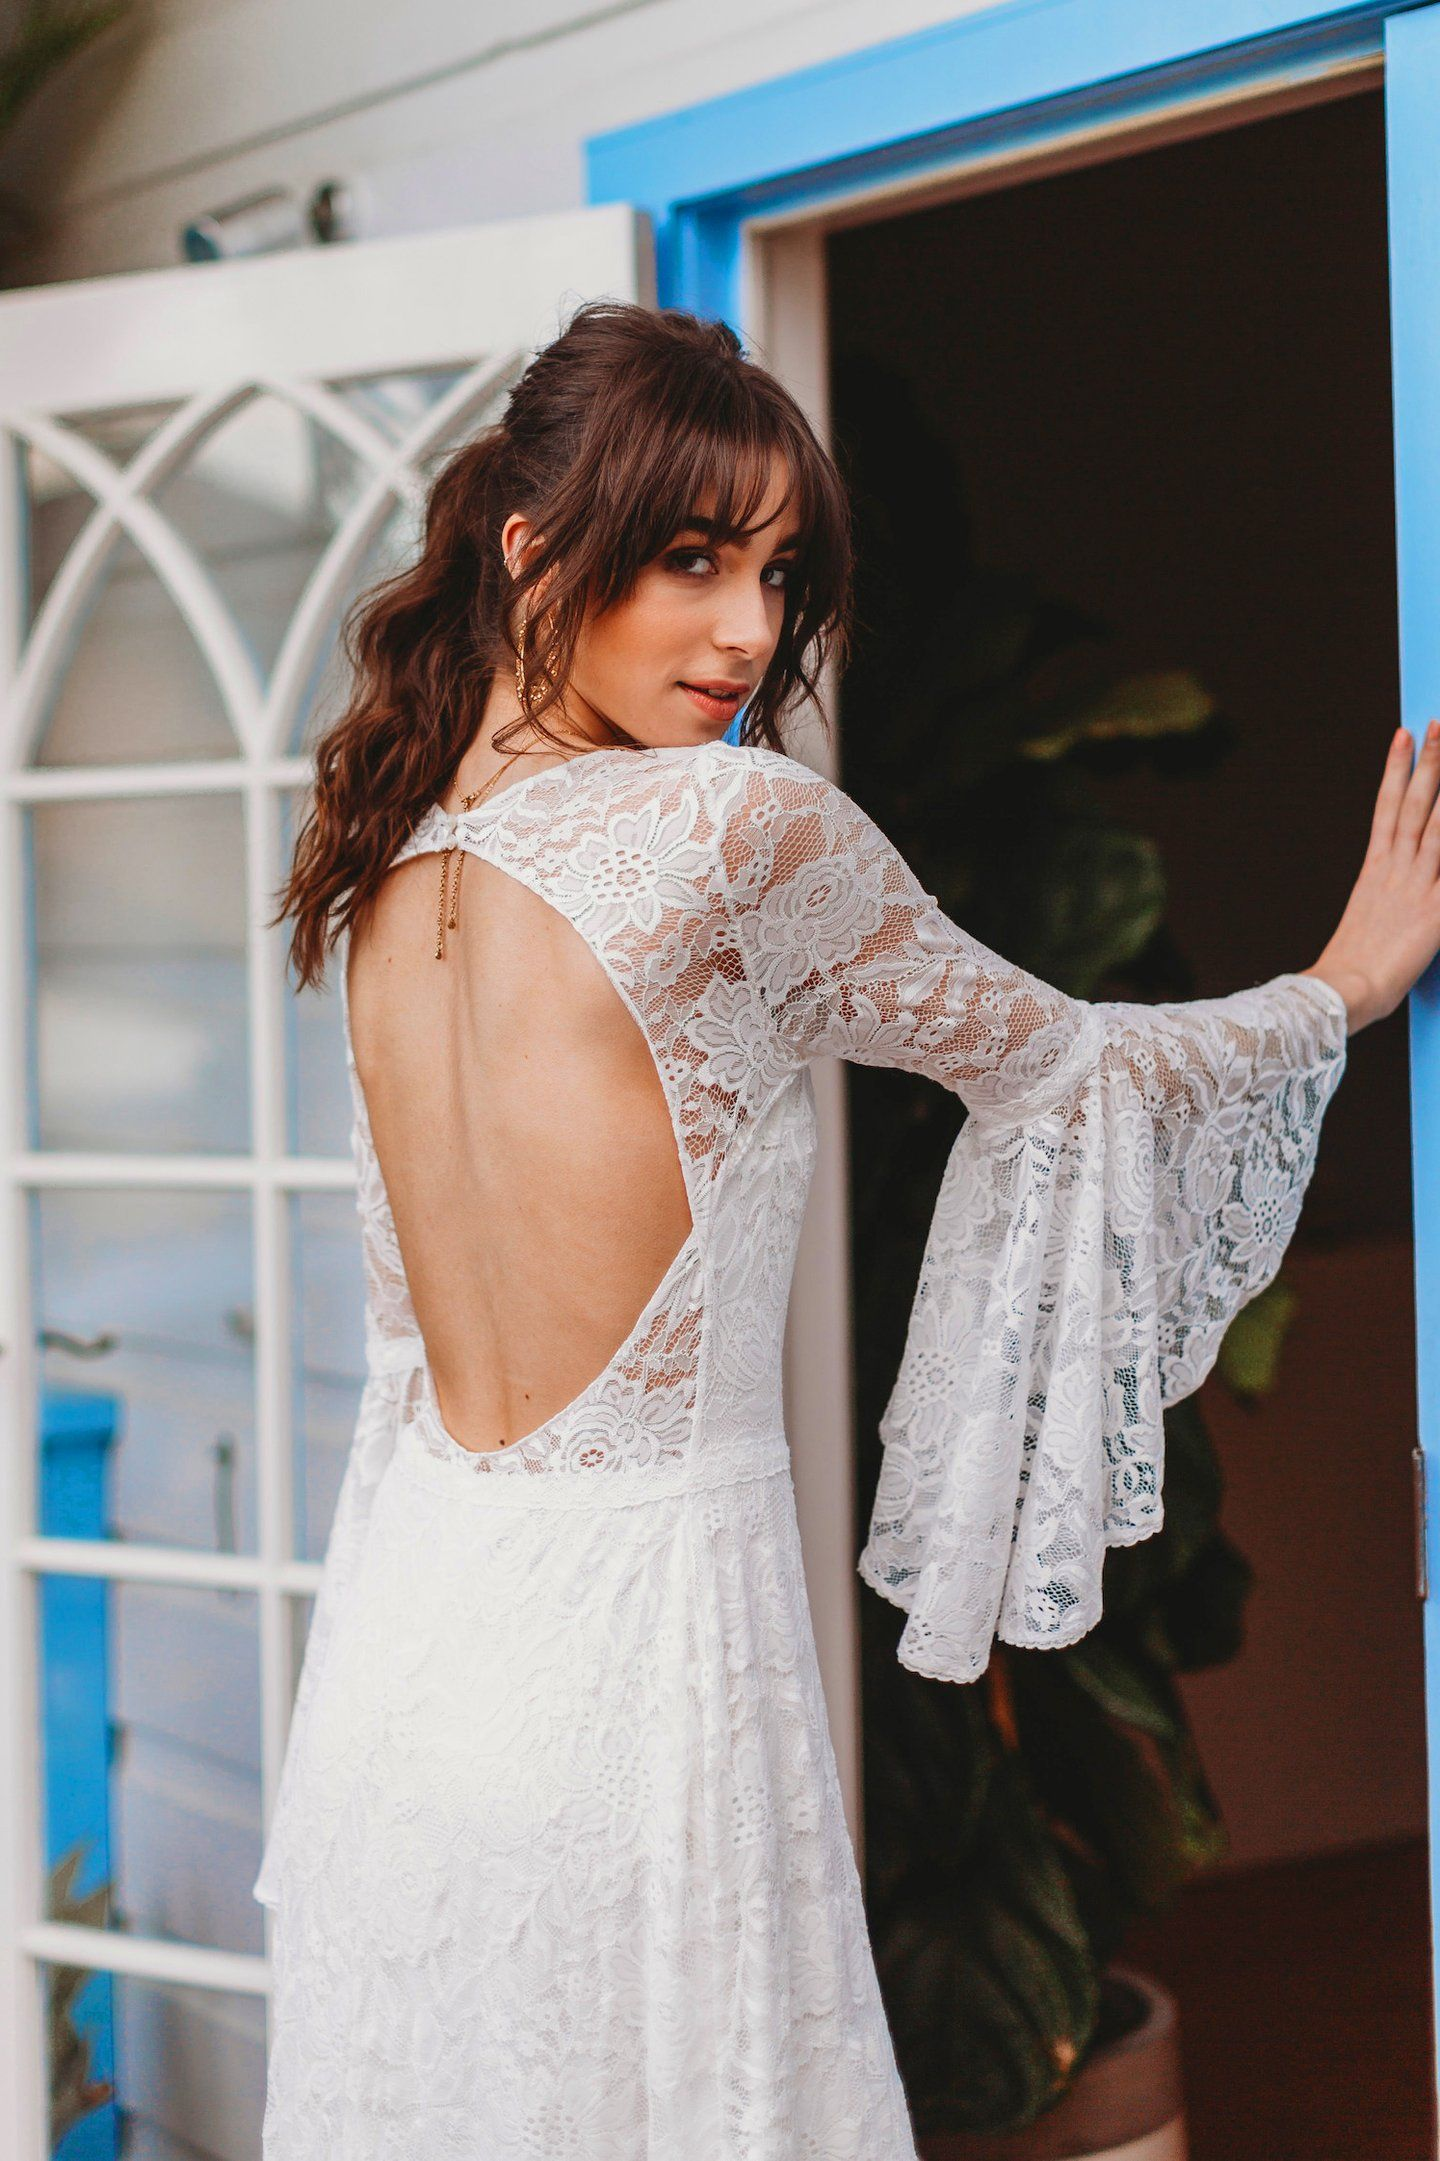 Joni future wedding pinterest wedding dresses wedding and s